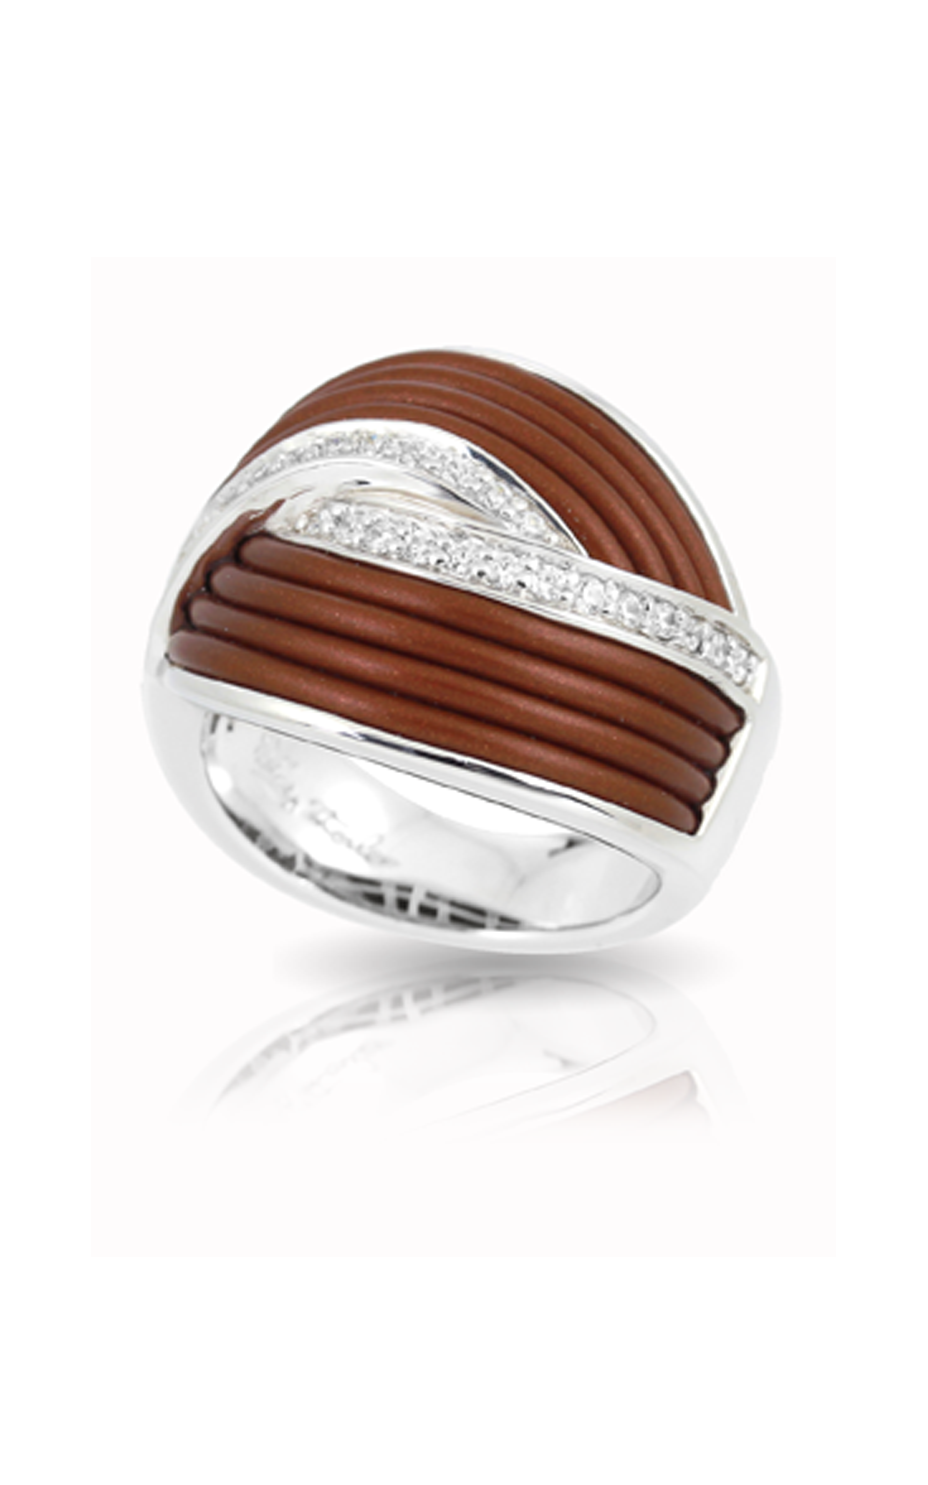 Belle Etoile Eterno Brown Ring 01051220502-7 product image